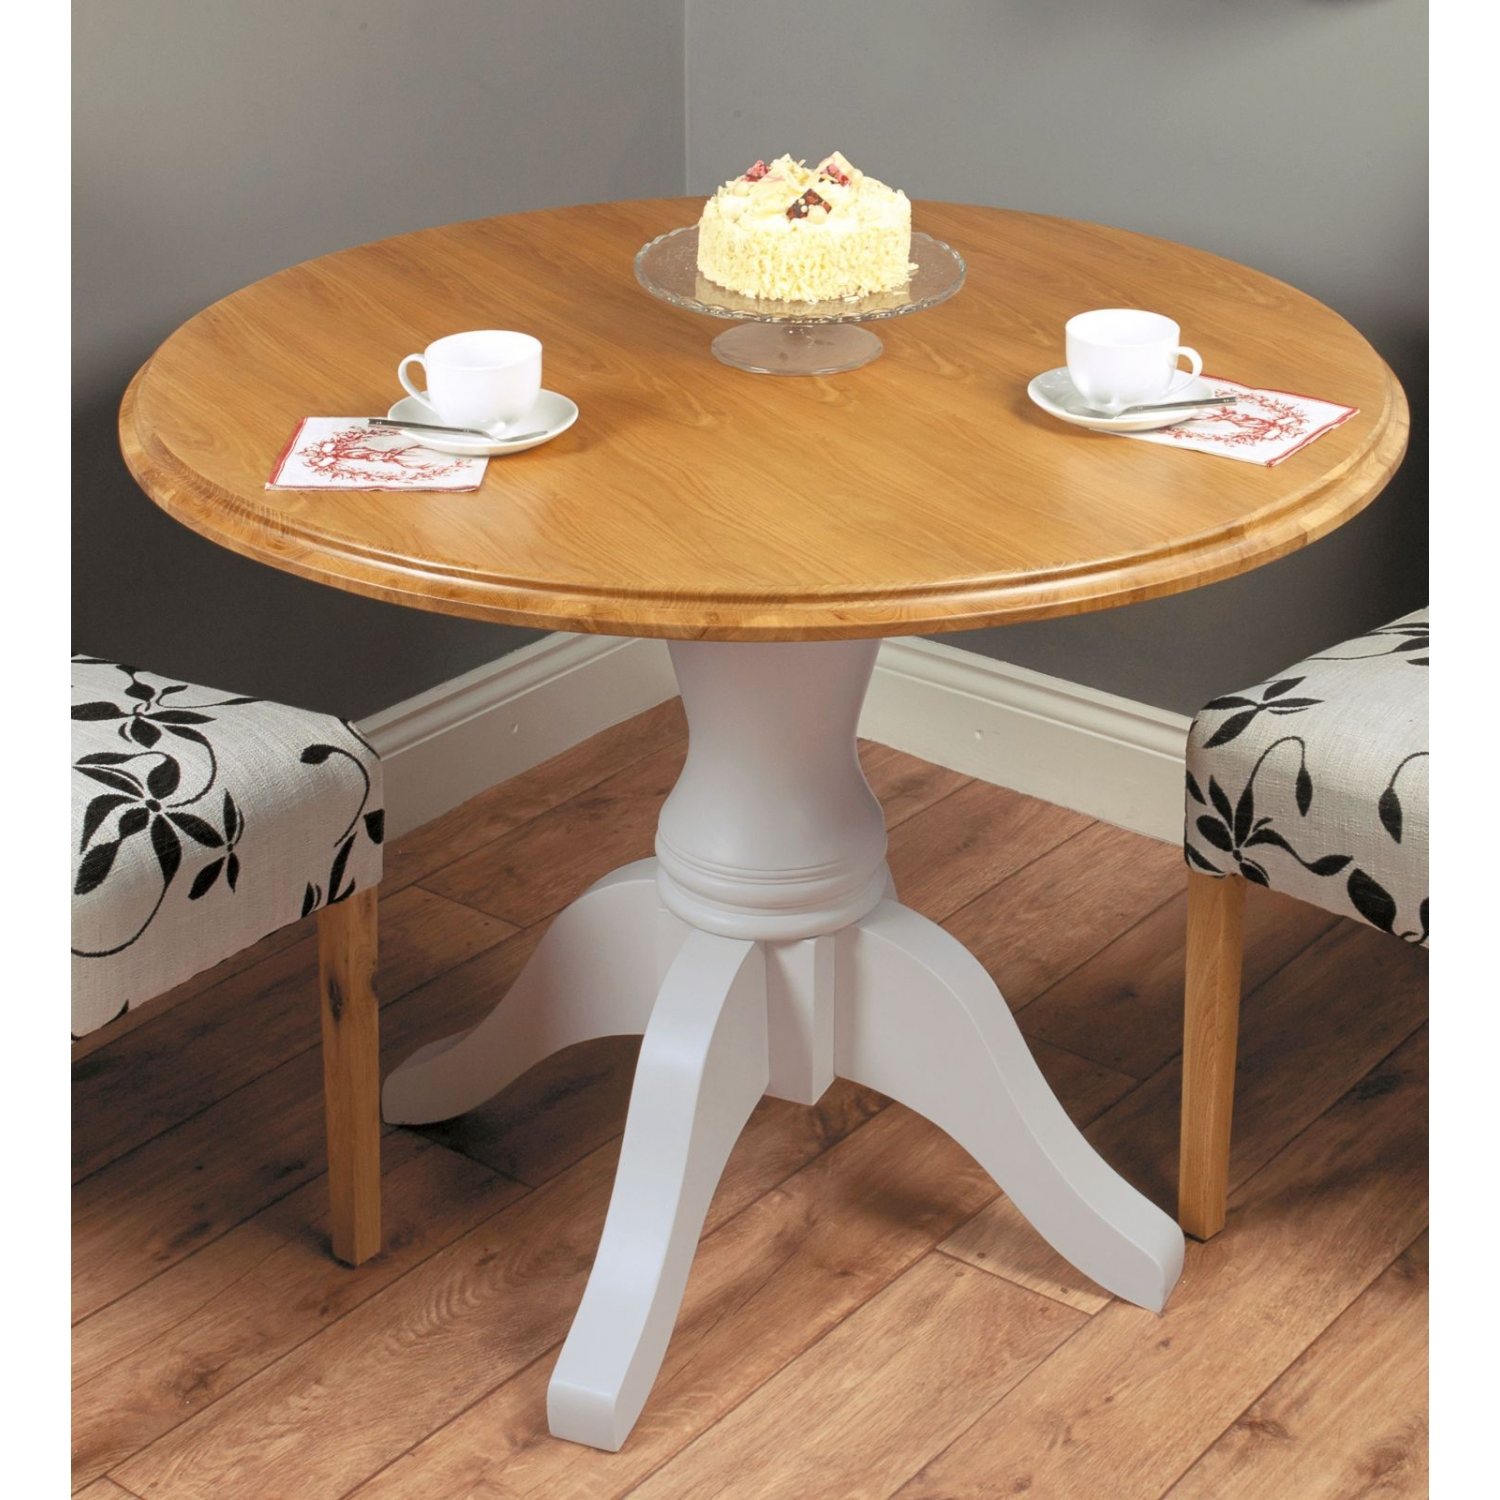 Bedford grey painted oak furniture round dining table ebay for Painted round dining table and chairs